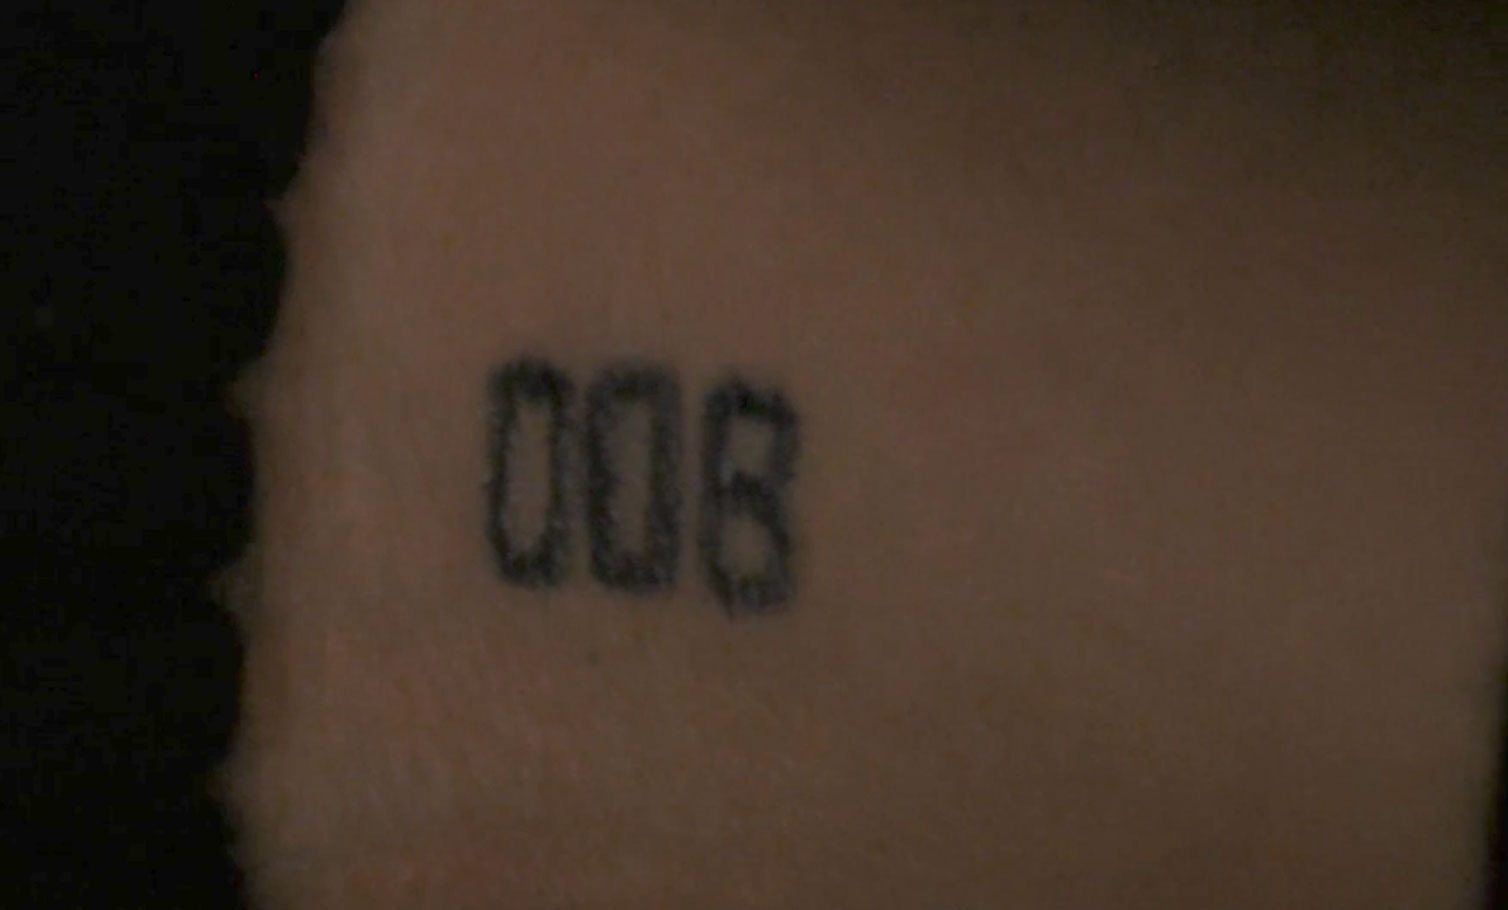 Stranger things 2 39 s incredible opening scene who 39 s the for Eleven tattoo stranger things